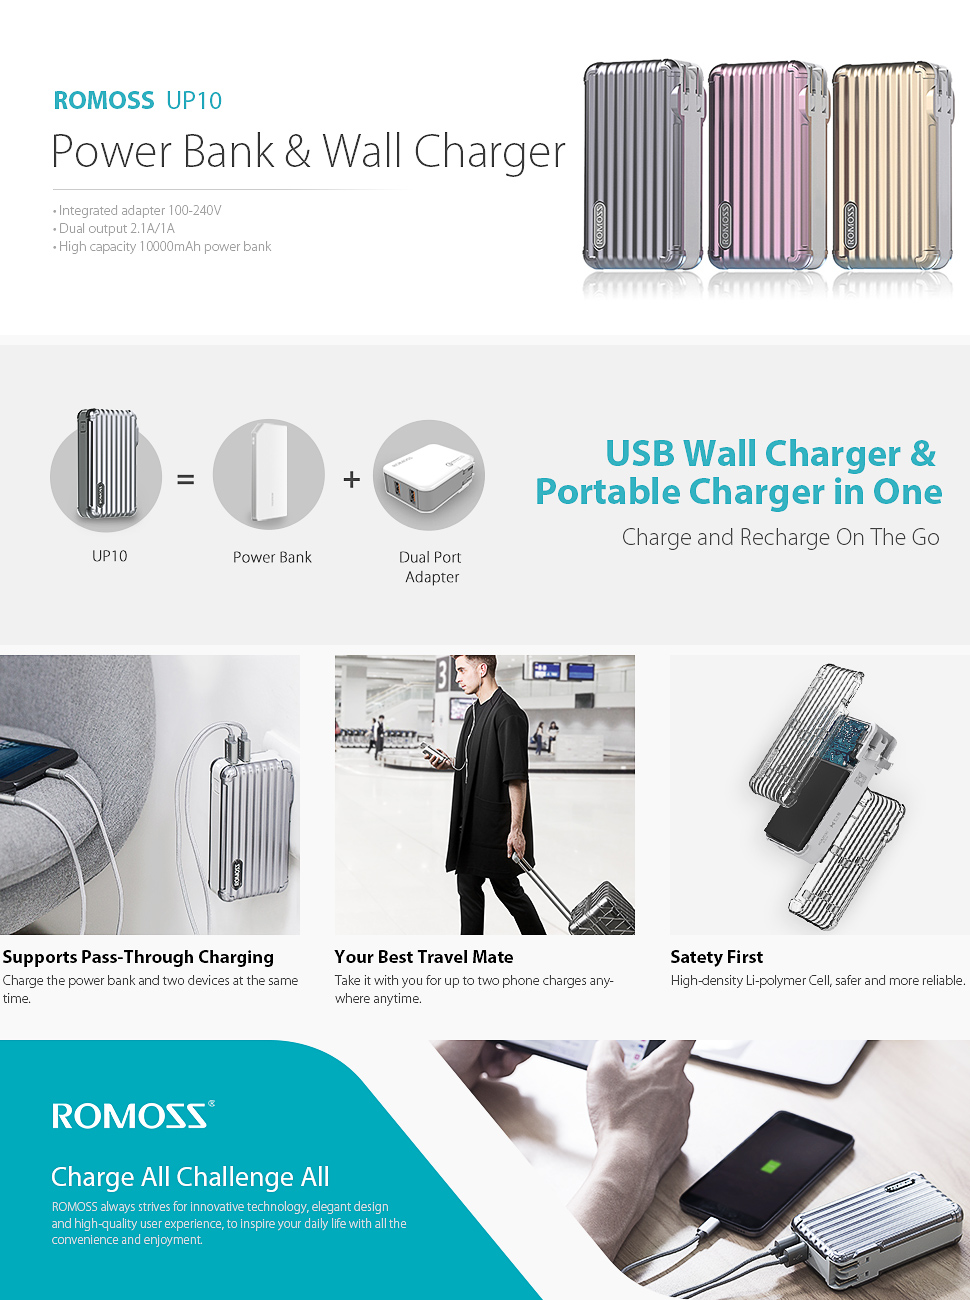 10000mah 2 In 1 Power Bank And Wall Charger Romoss Up10 Mobile Cellphone Battery Circuit Diagram The High Speed Portable From A Globally Technology Oriented Reliable Provider Of